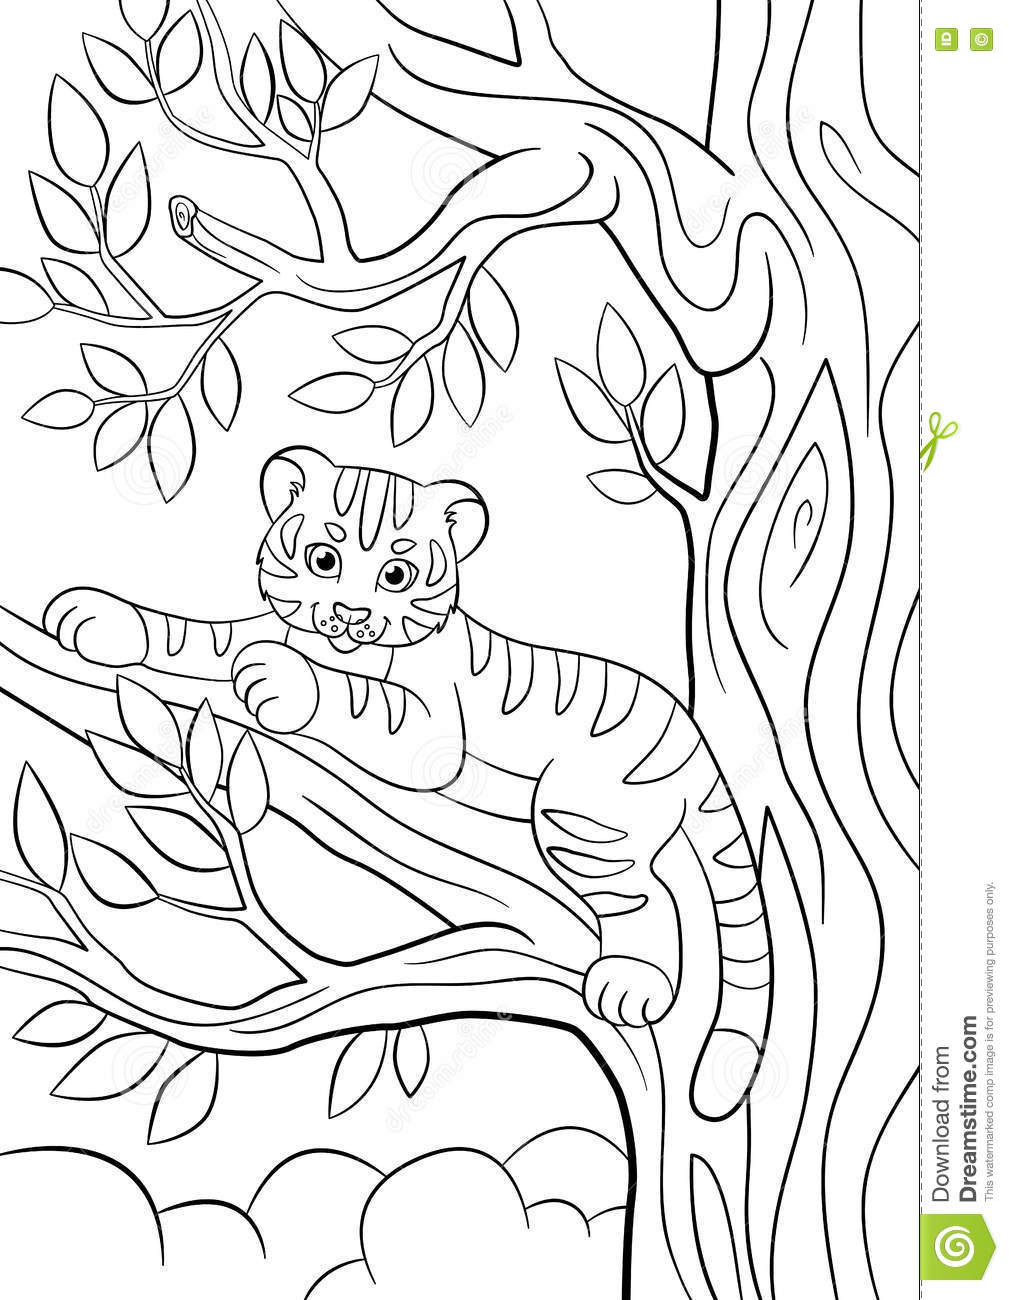 Cute Baby Tiger Coloring Pages  Coloring Pages Wild Animals Little Cute Baby Tiger